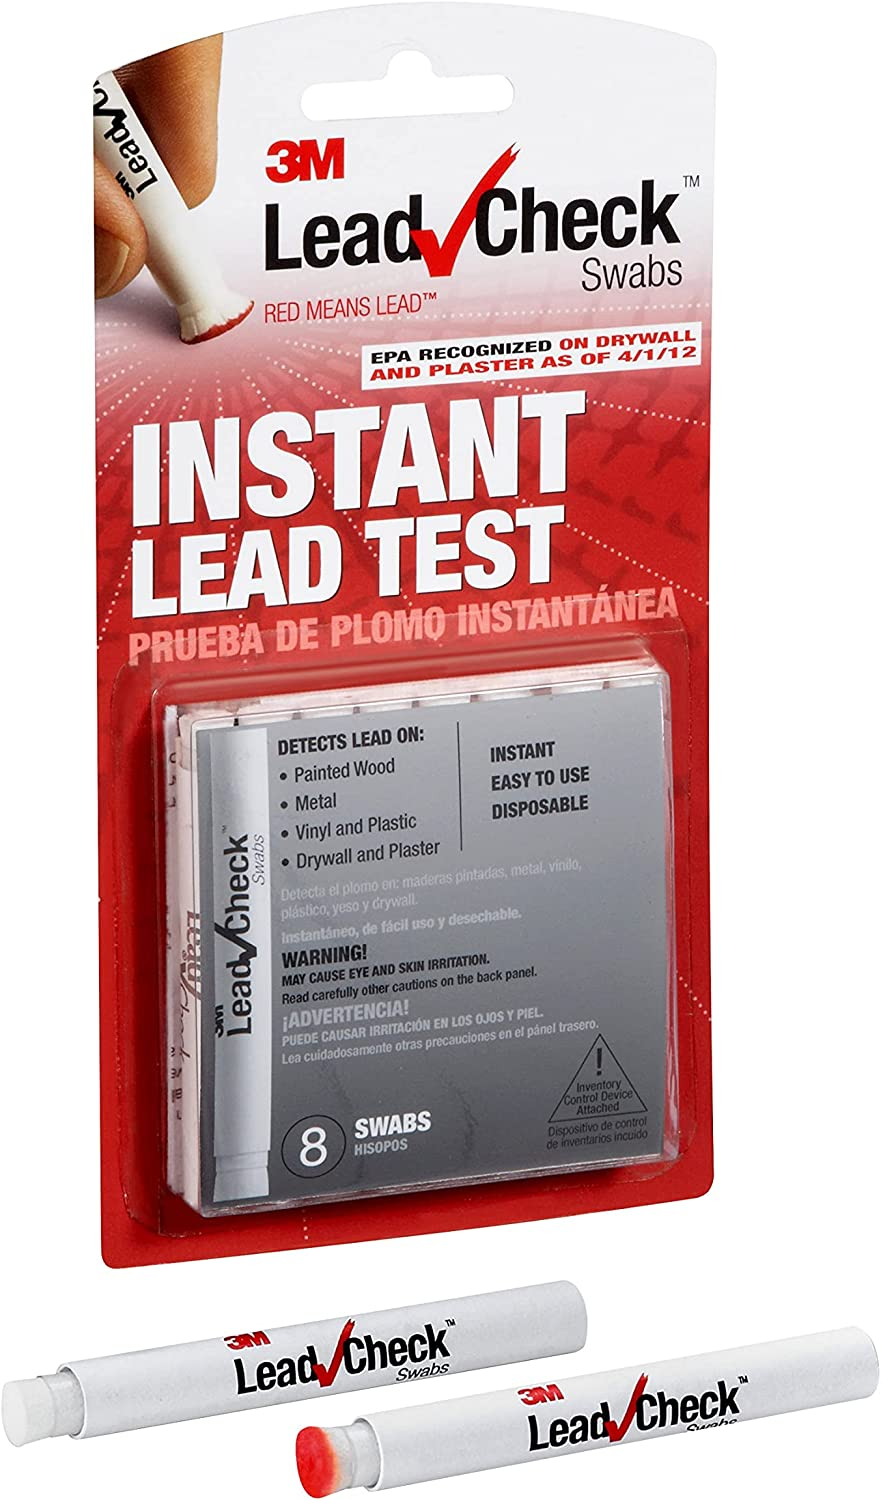 3M LeadCheck Swabs Instant Limited time for free shipping Test Lead Over item handling ☆ 8-Pack